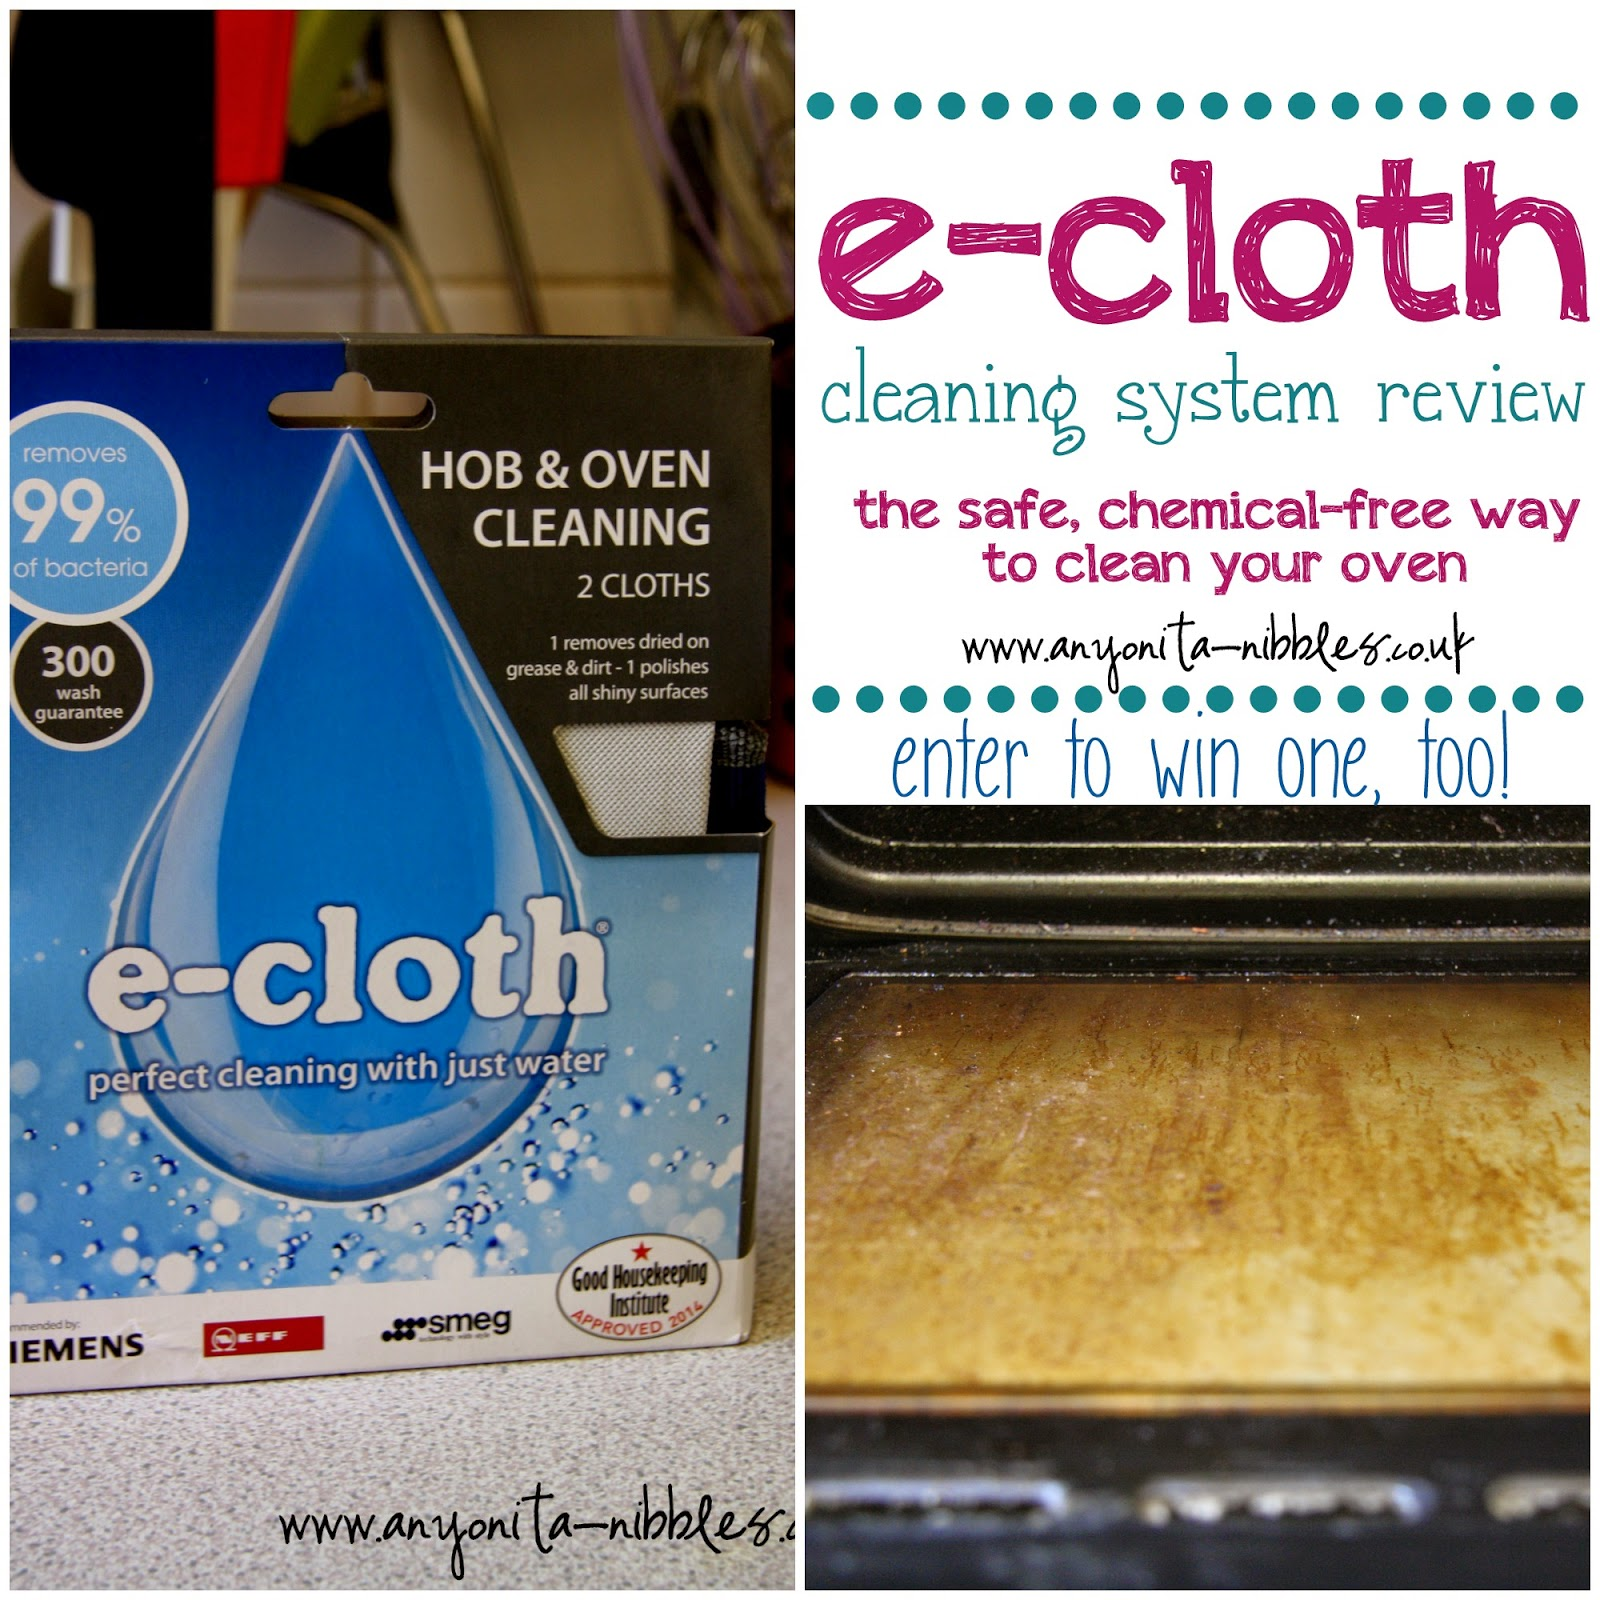 e-cloth hob & oven review & giveaway from www.anyonita-nibbles.co.uk